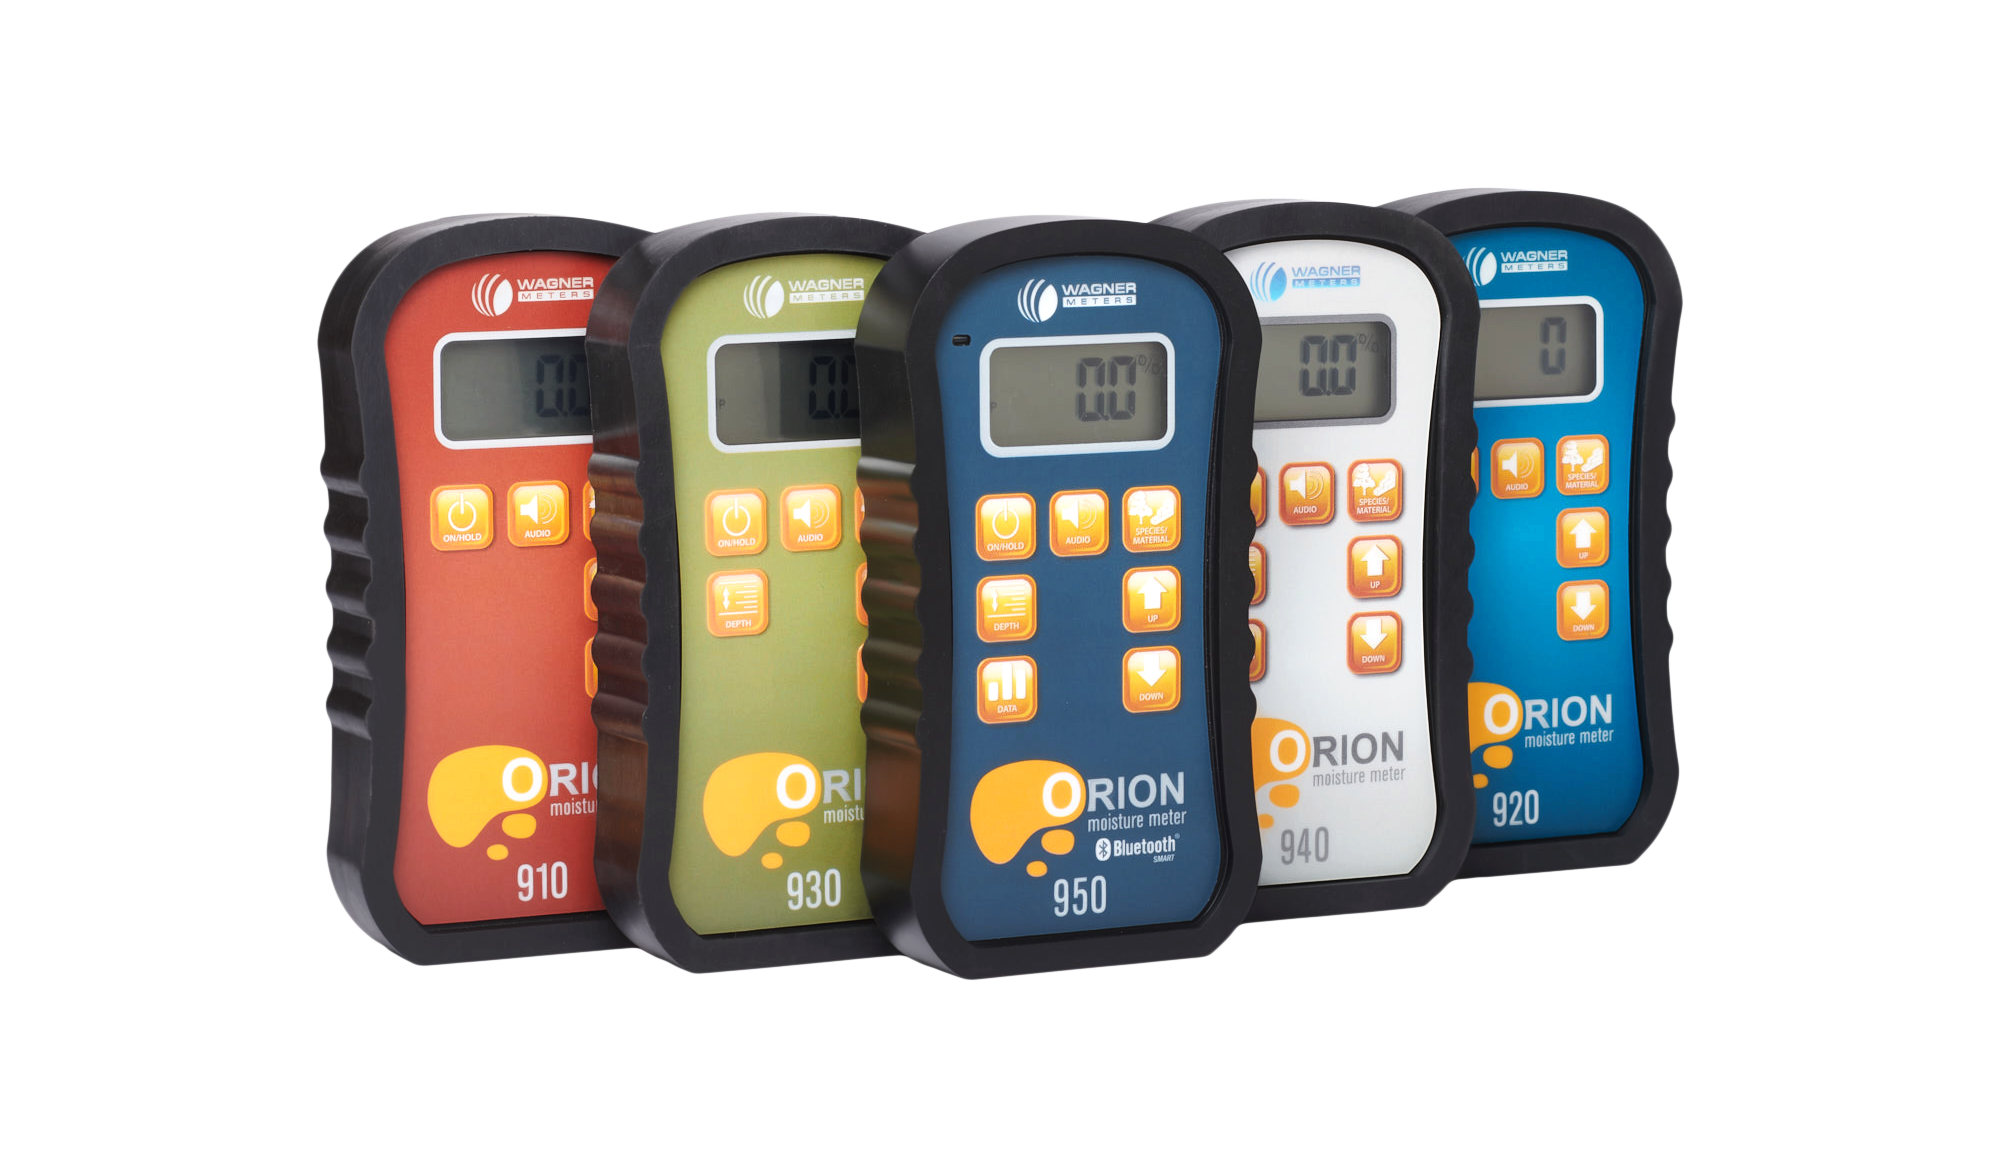 Orion line of moisture meters